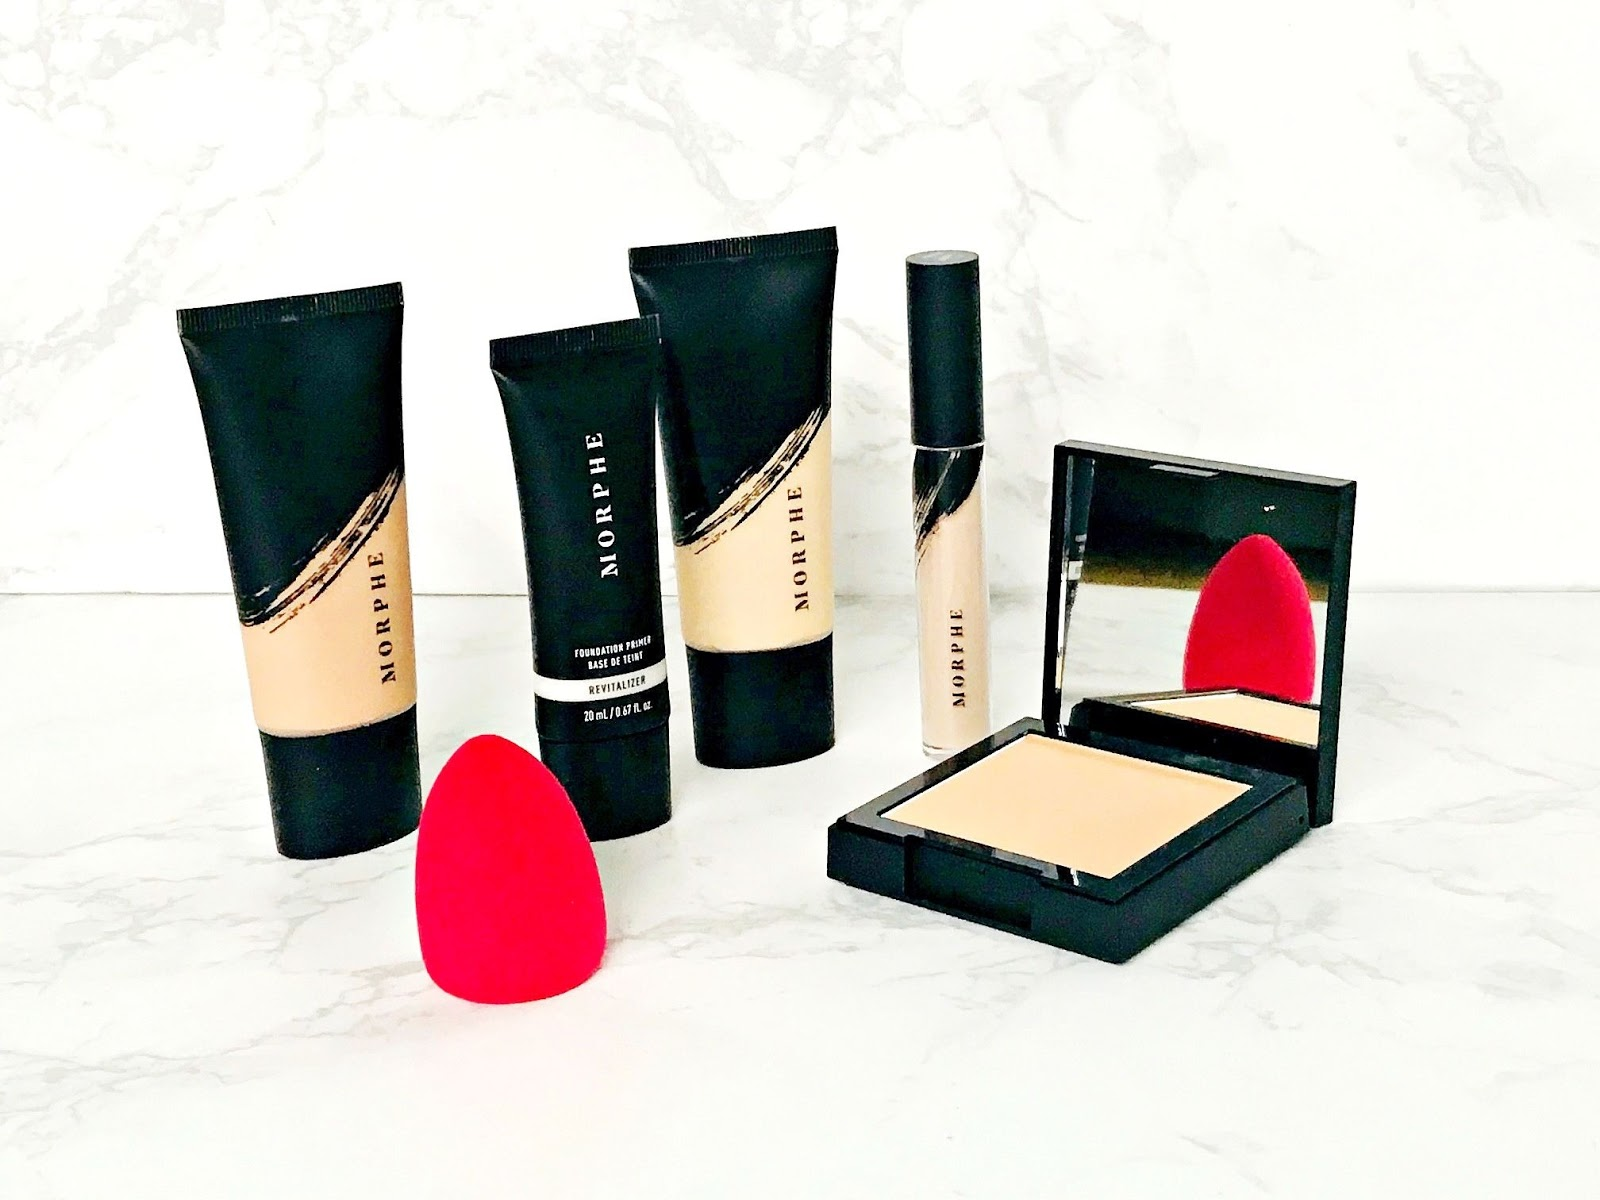 Morphe, Cult Beauty Brand of The Month, Morphe Fluidity Full Coverage Foundation, Morphe Liquid Full Coverage Concealer, Morphe Finishing powder, Morphe Foundation Primer